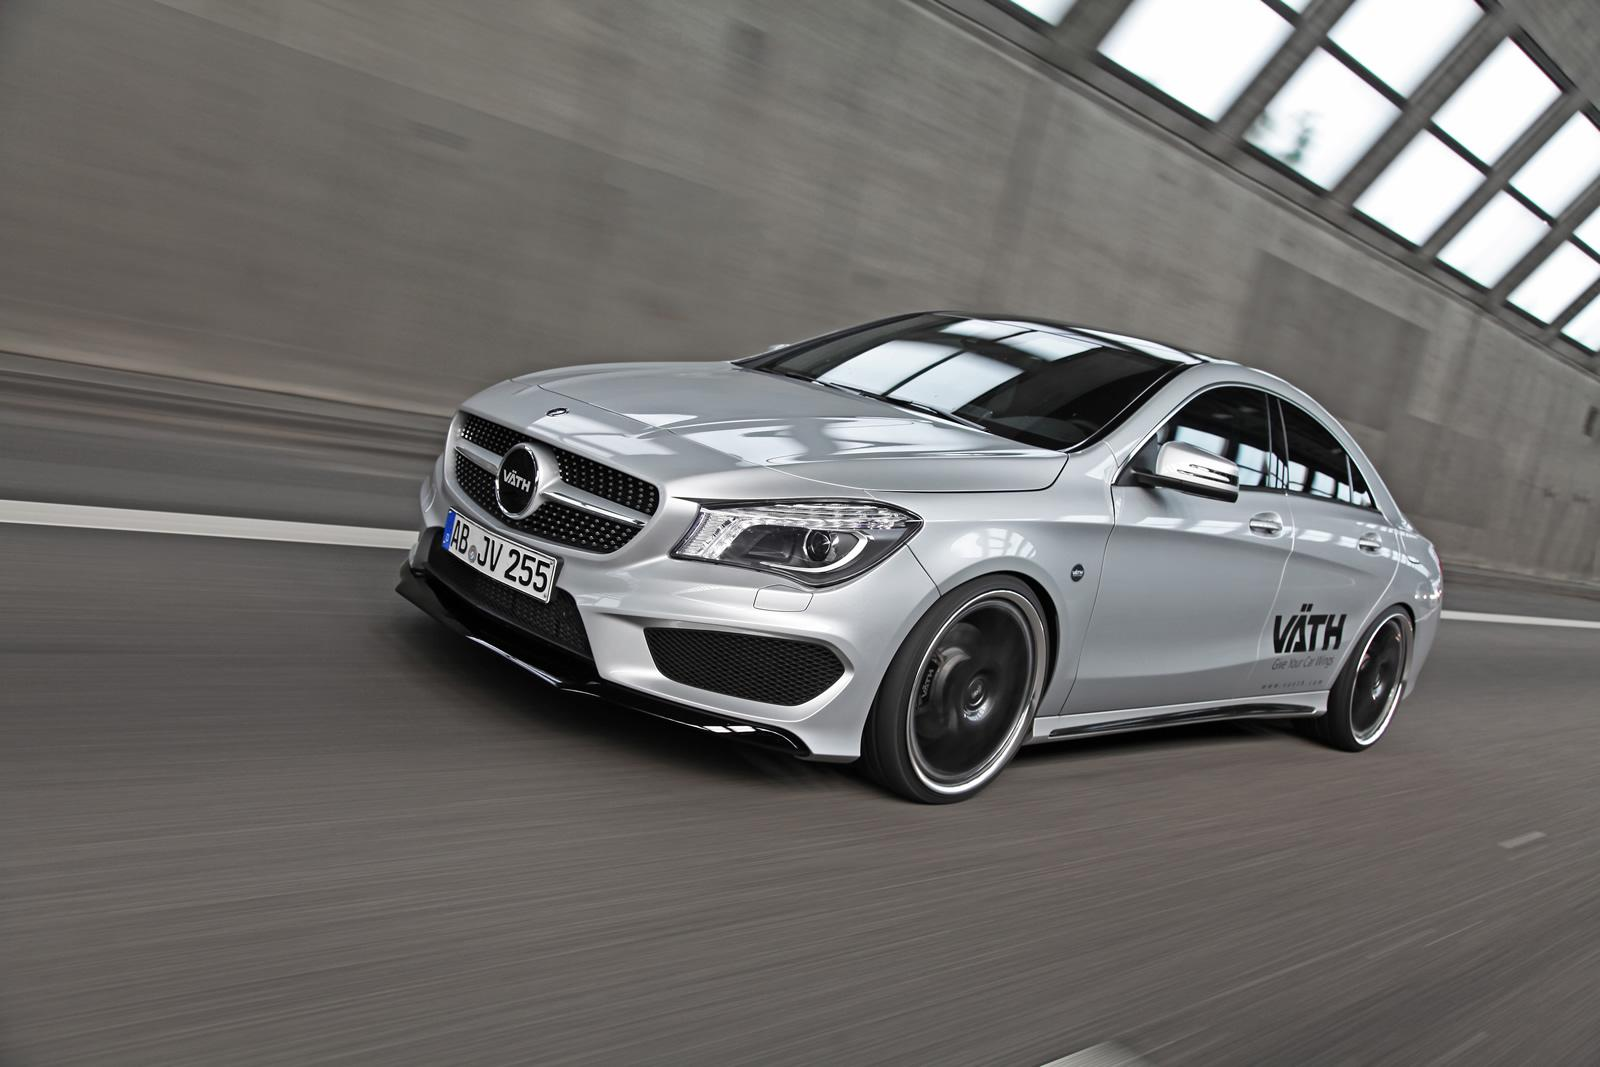 Mercedes Cars - Tuning: VÄTH tuned Mercedes CLA 250 with 192kW